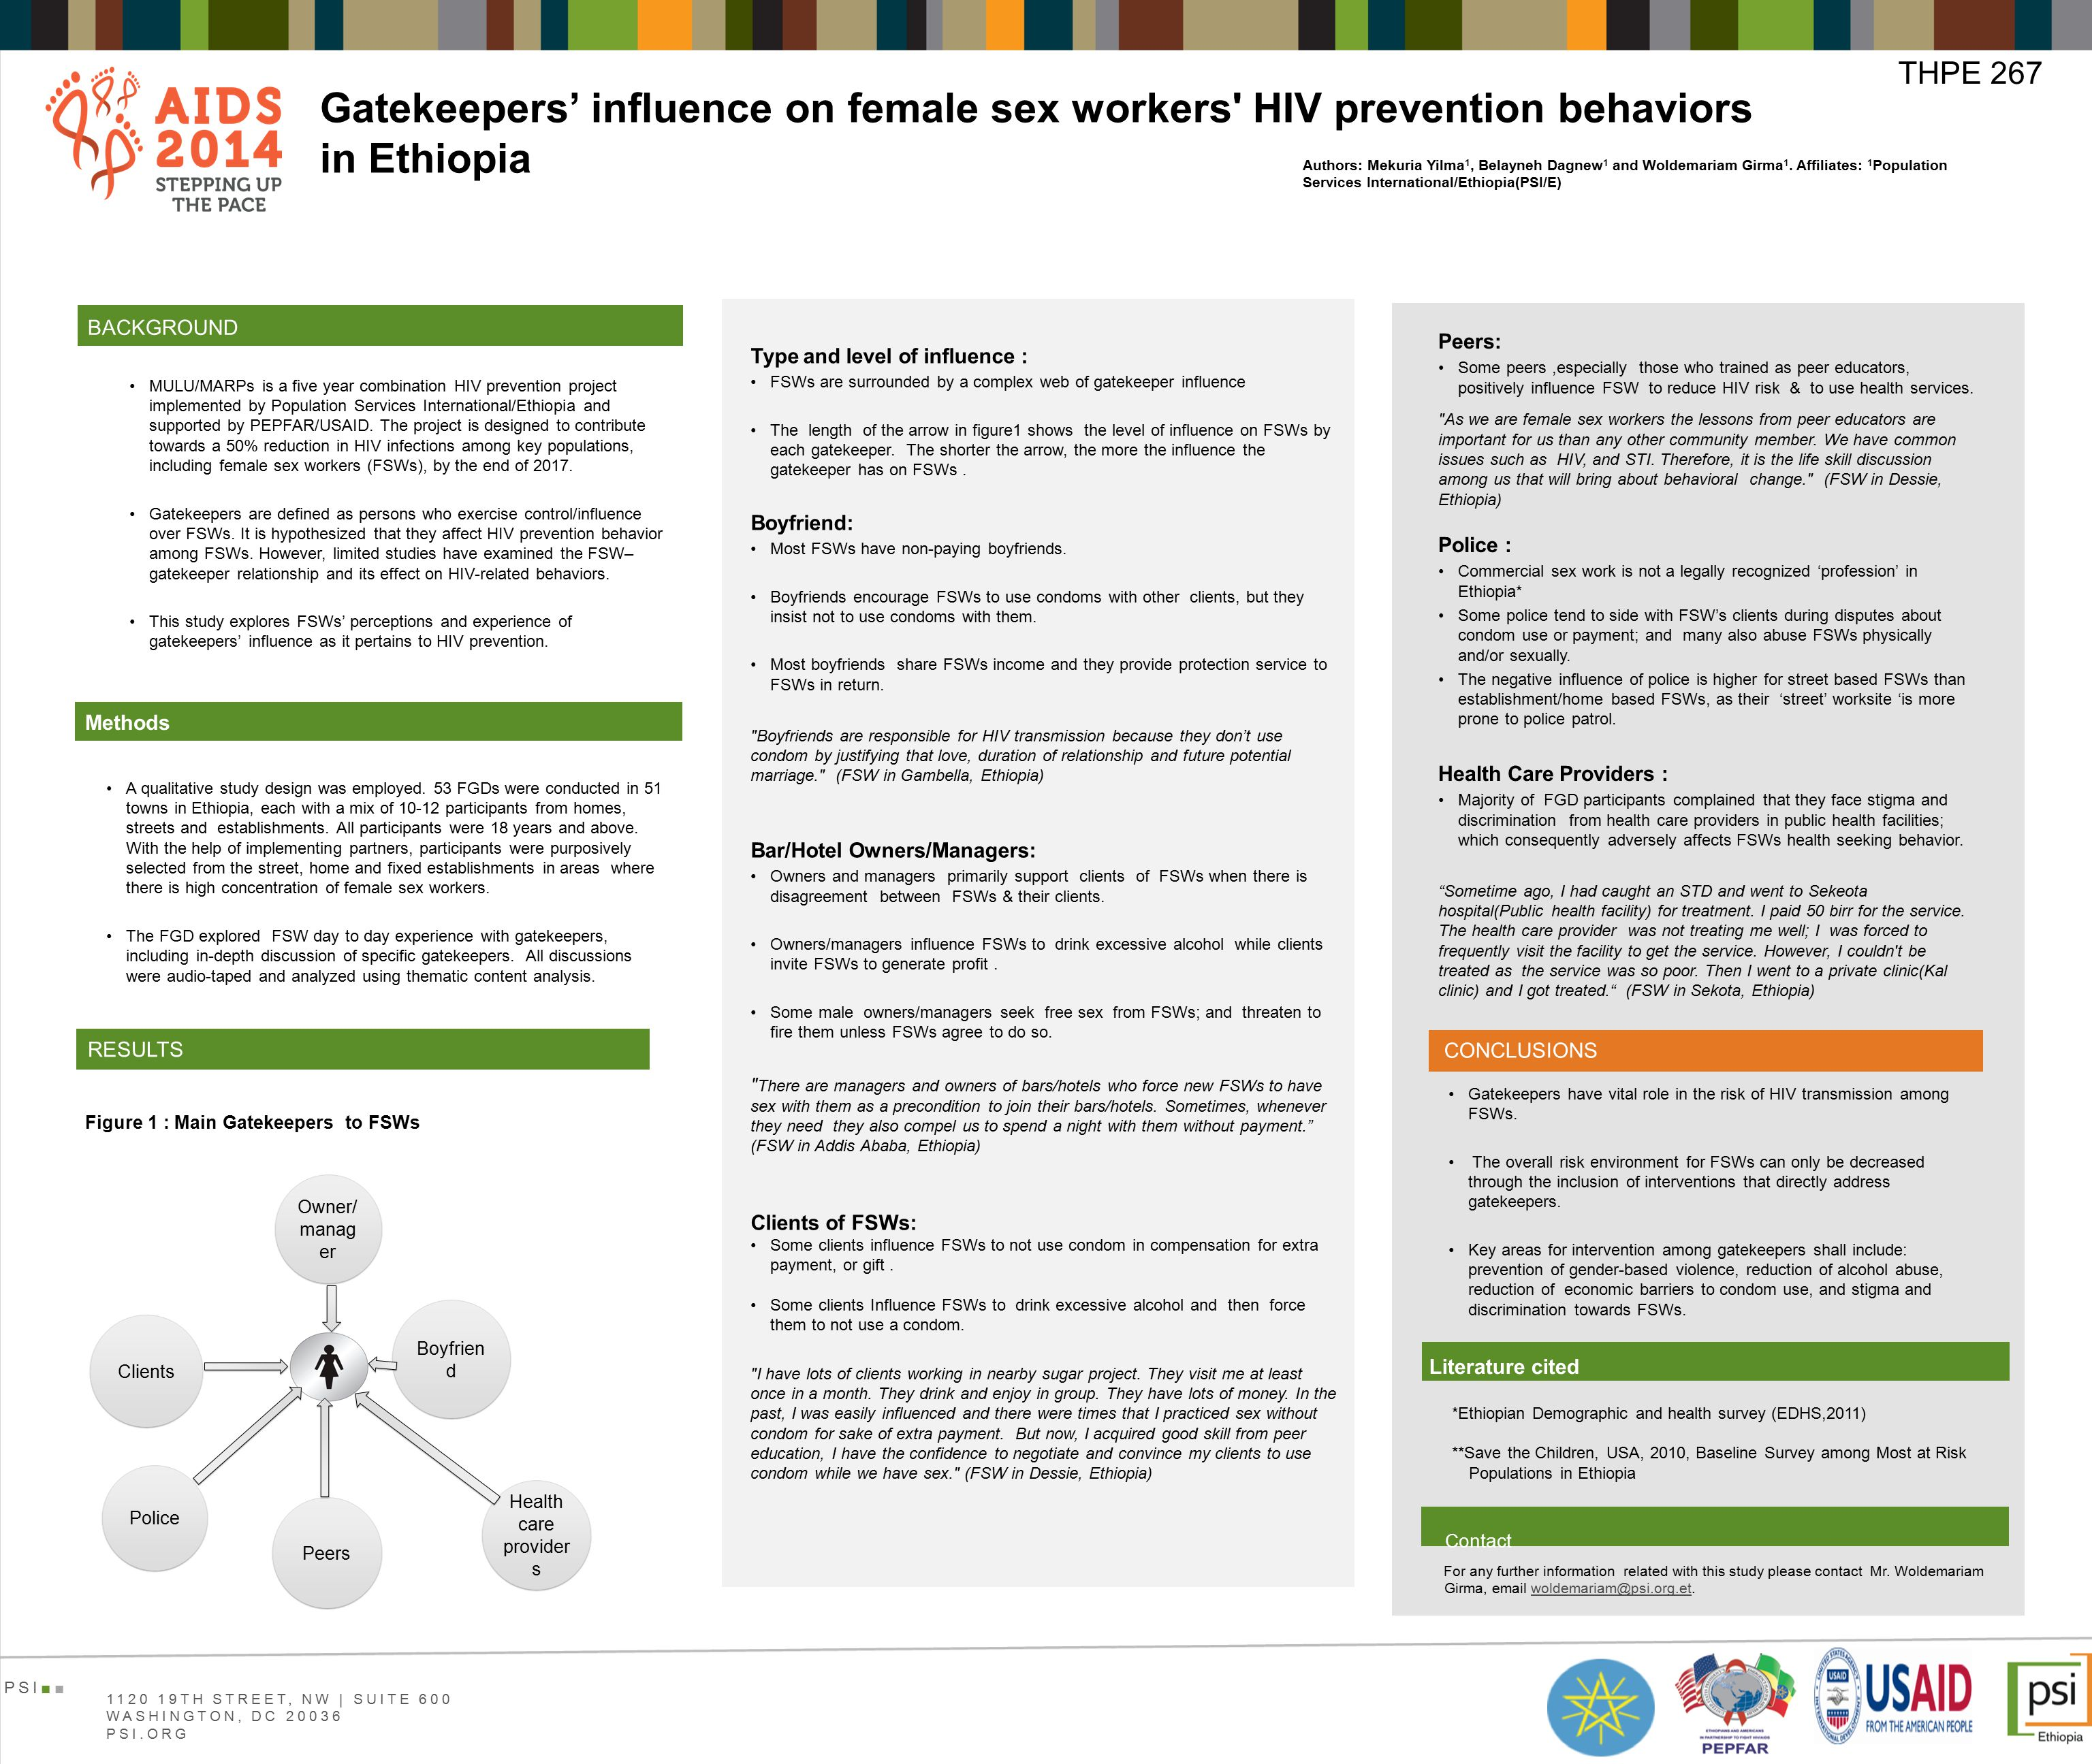 Gatekeepers' influence on female sex workers HIV prevention behaviors in Ethiopia MULU/MARPs is a five year combination HIV prevention project implemented by Population Services International/Ethiopia and supported by PEPFAR/USAID.